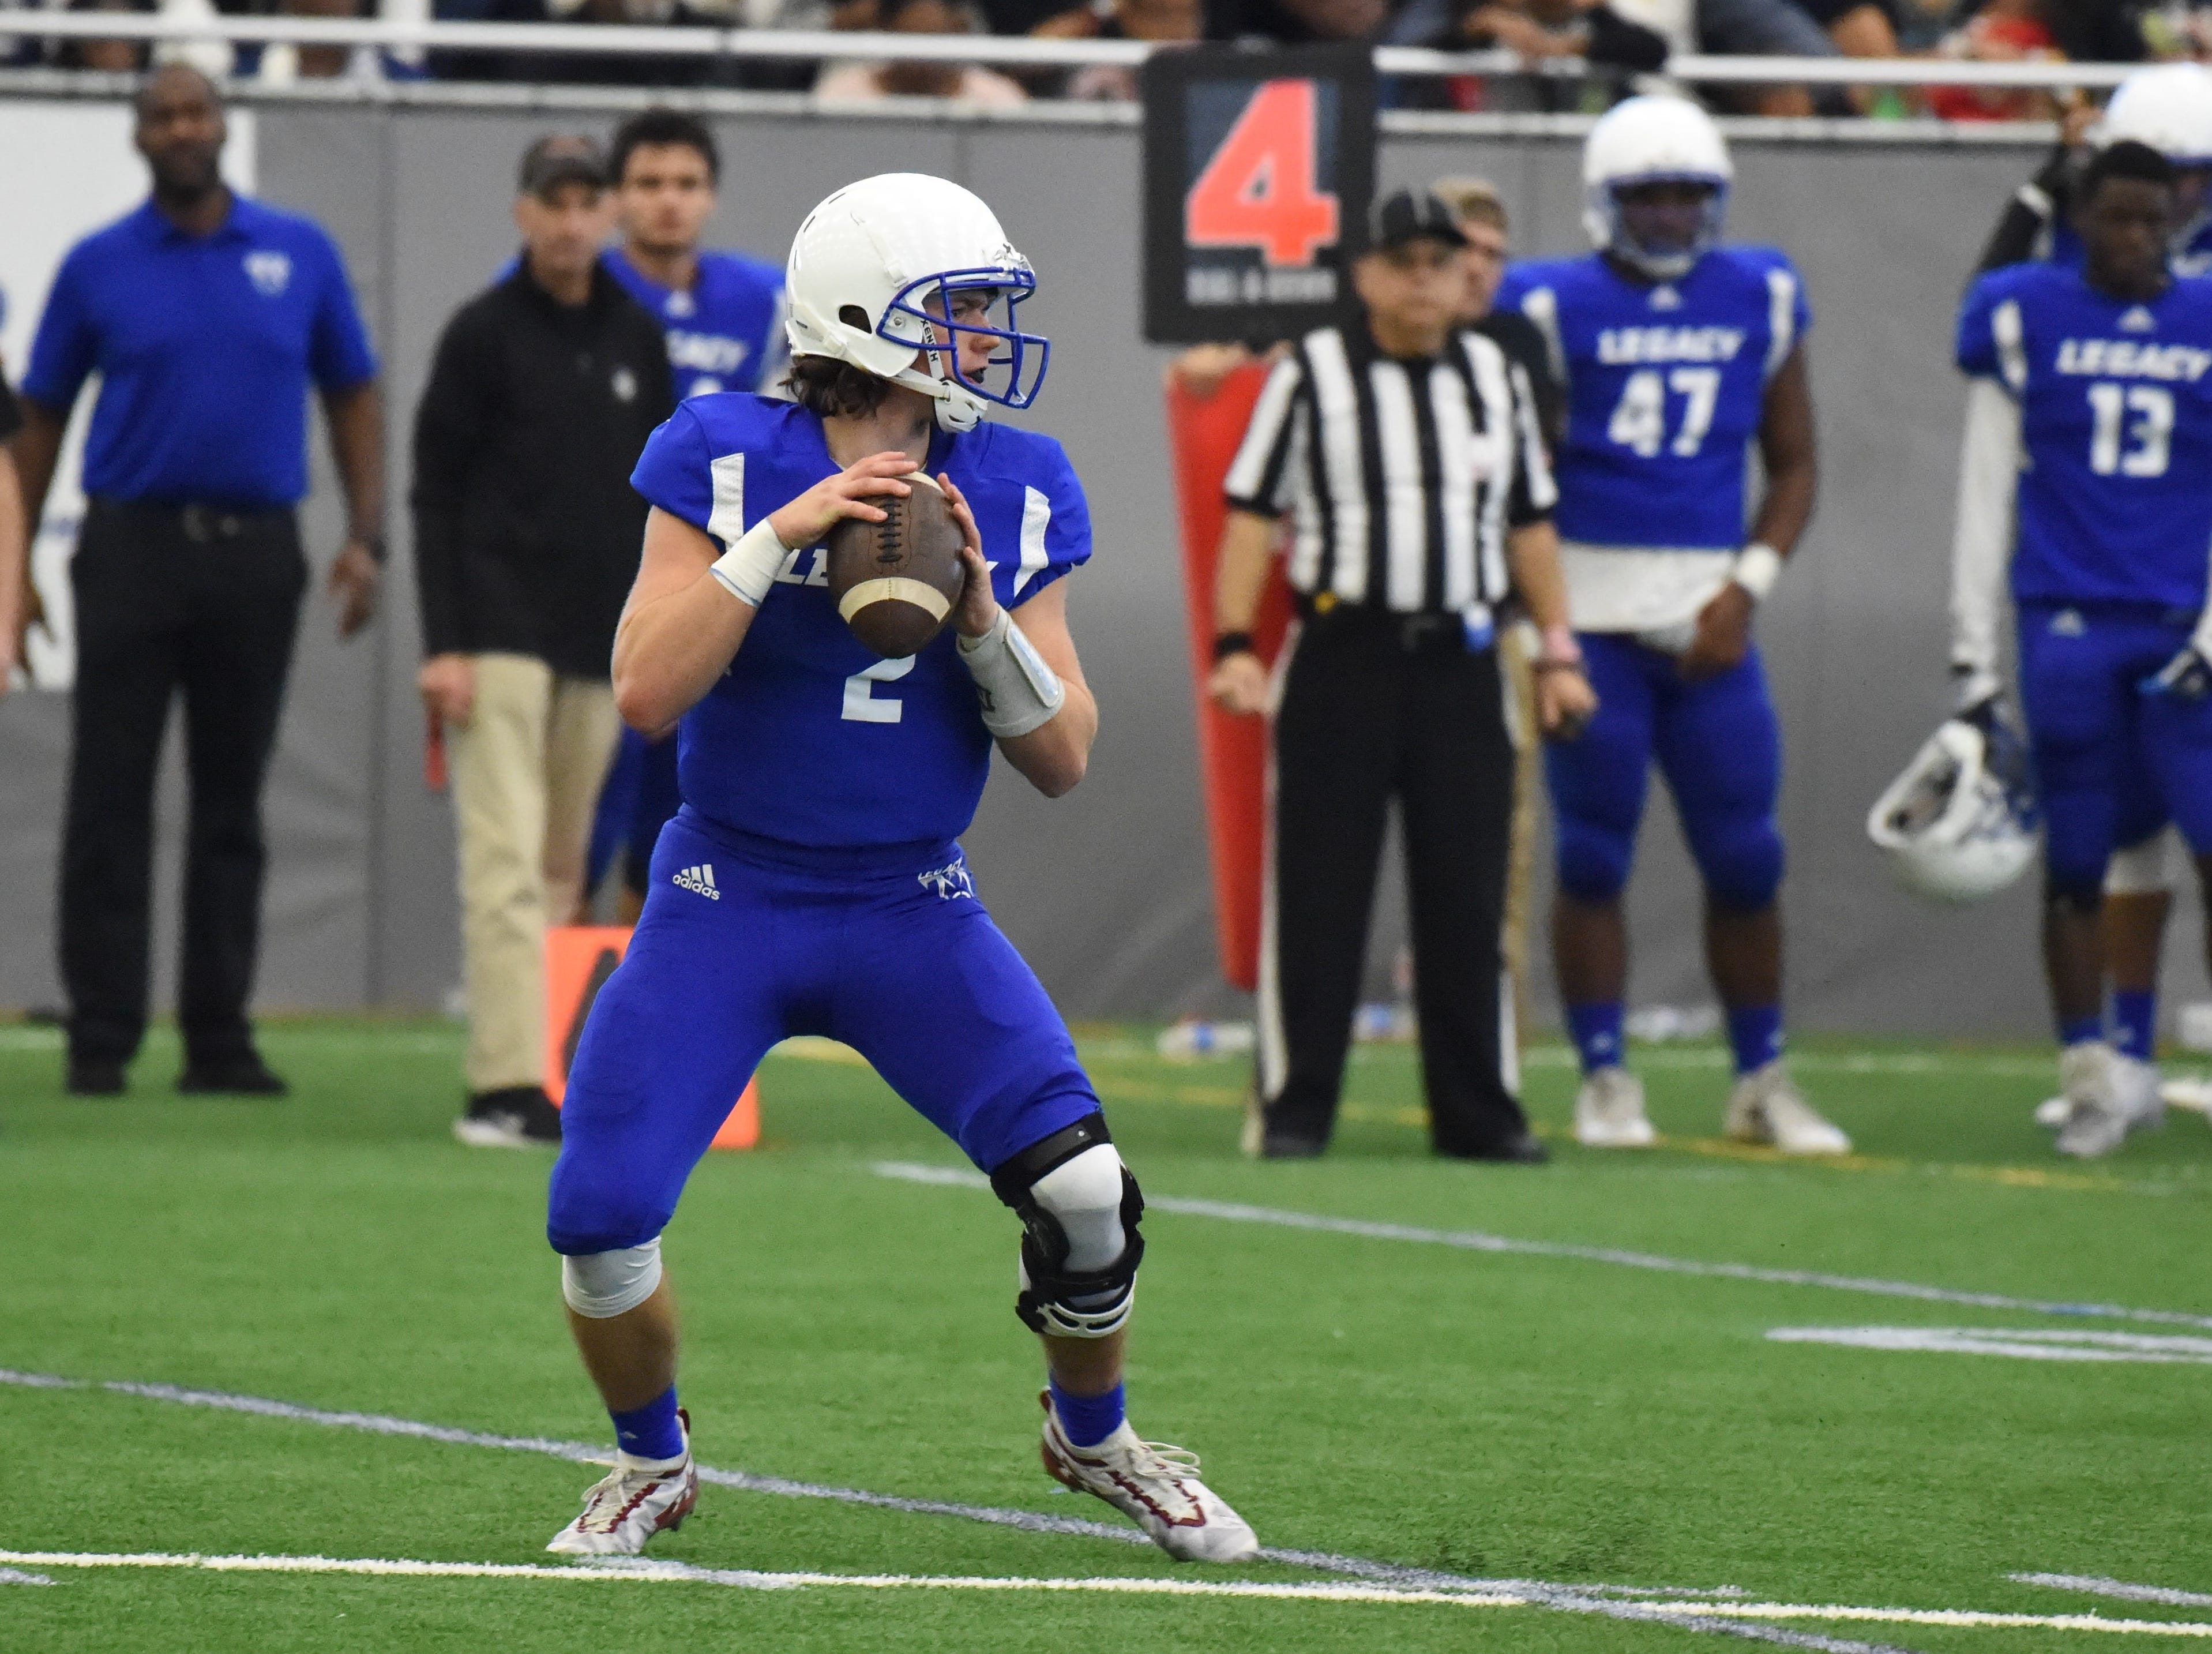 Back to launch a pass for Team Legacy is quarterback Gray Kinnie (2), from Birmingham Seaholm.